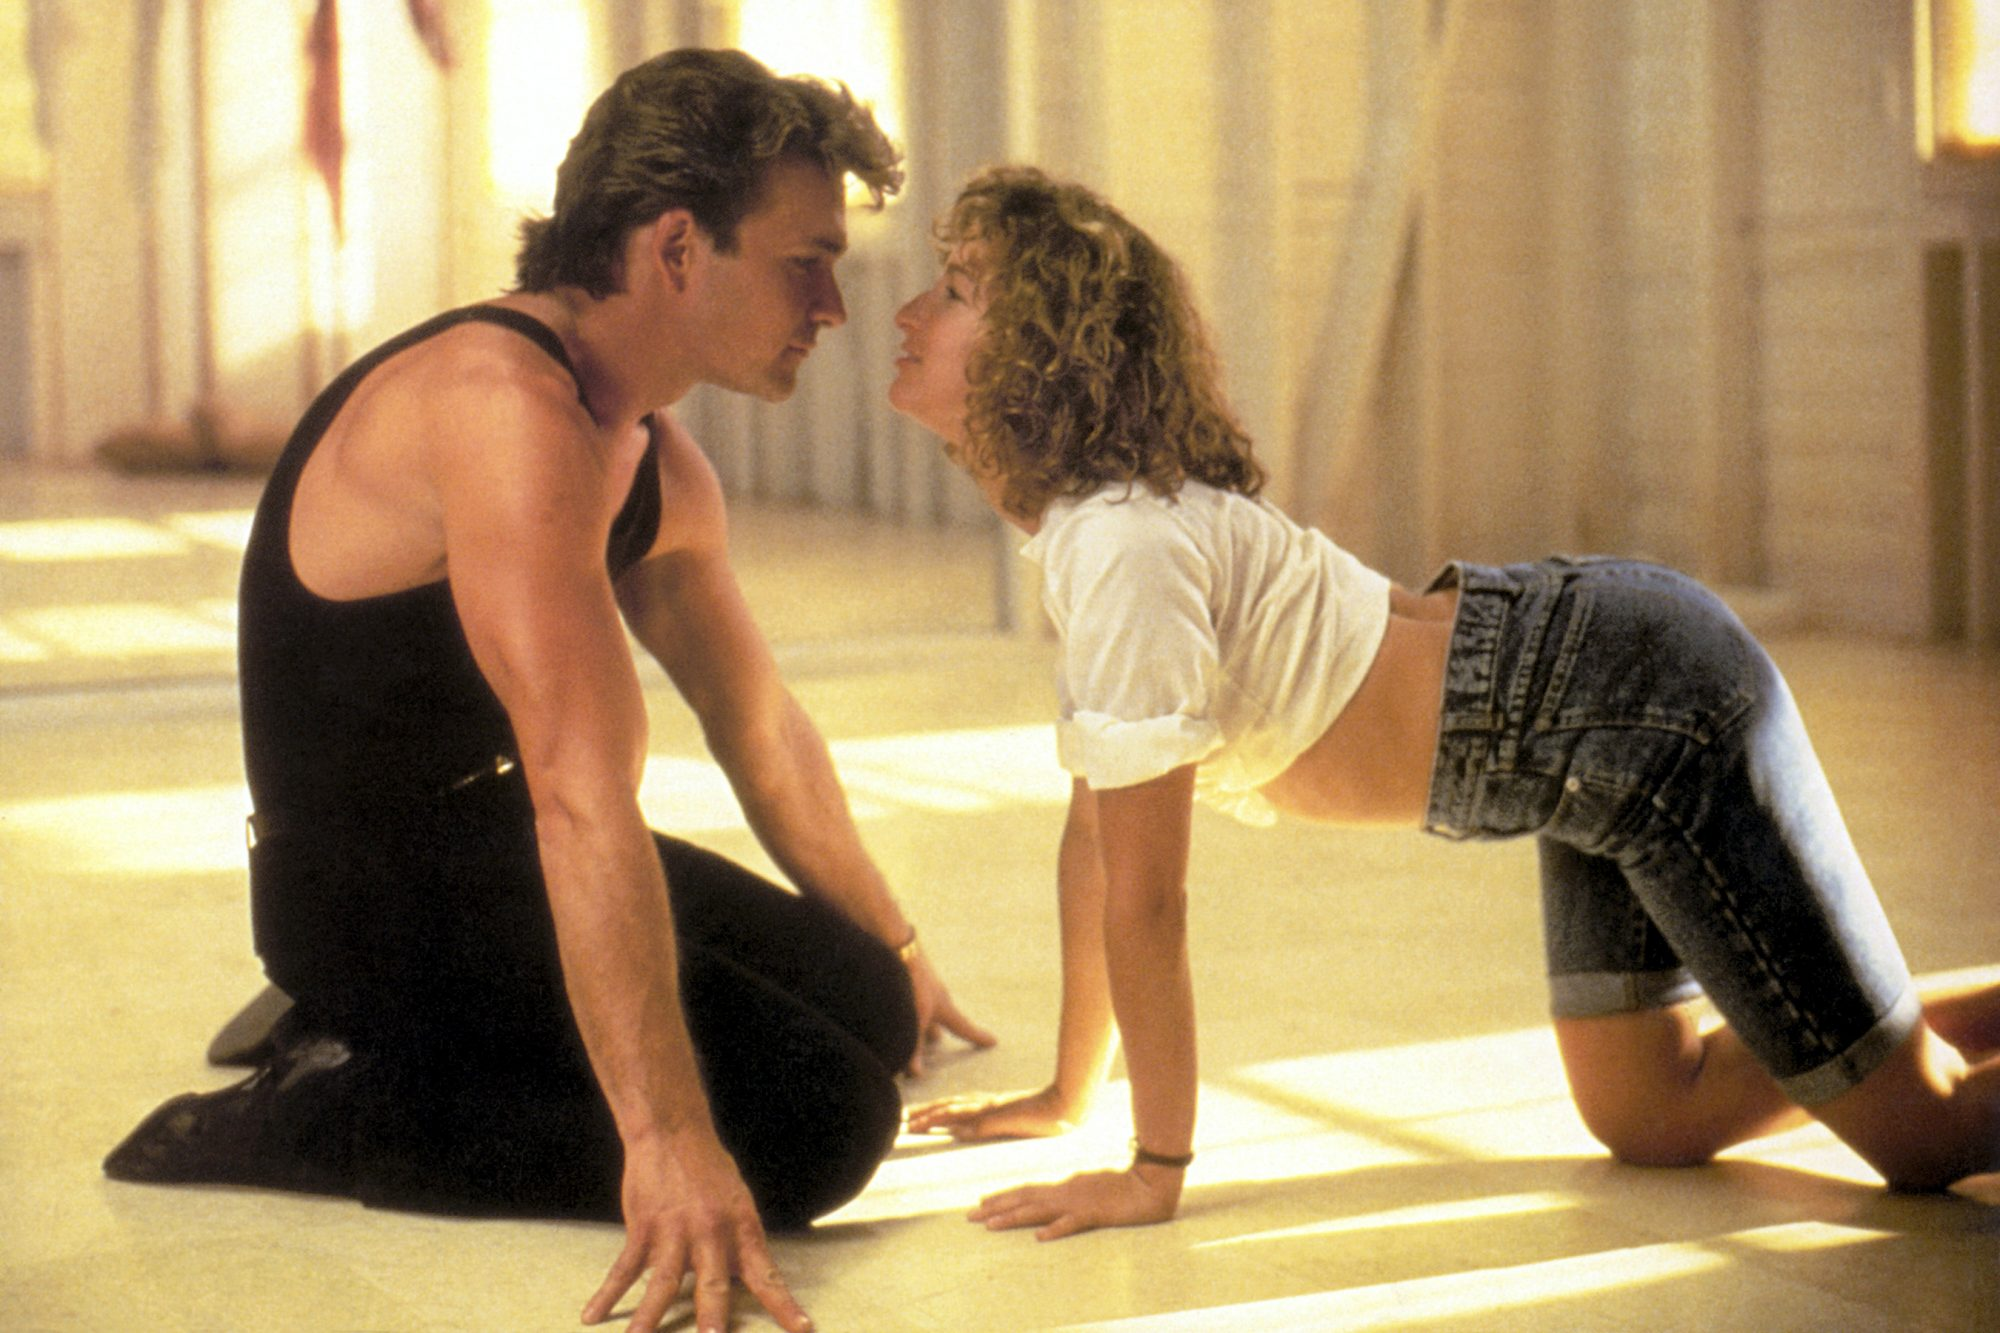 DIRTY DANCING, Patrick Swayze, Jennifer Grey, 1987, (c) Artisan Entertainment/courtesy Everett Colle